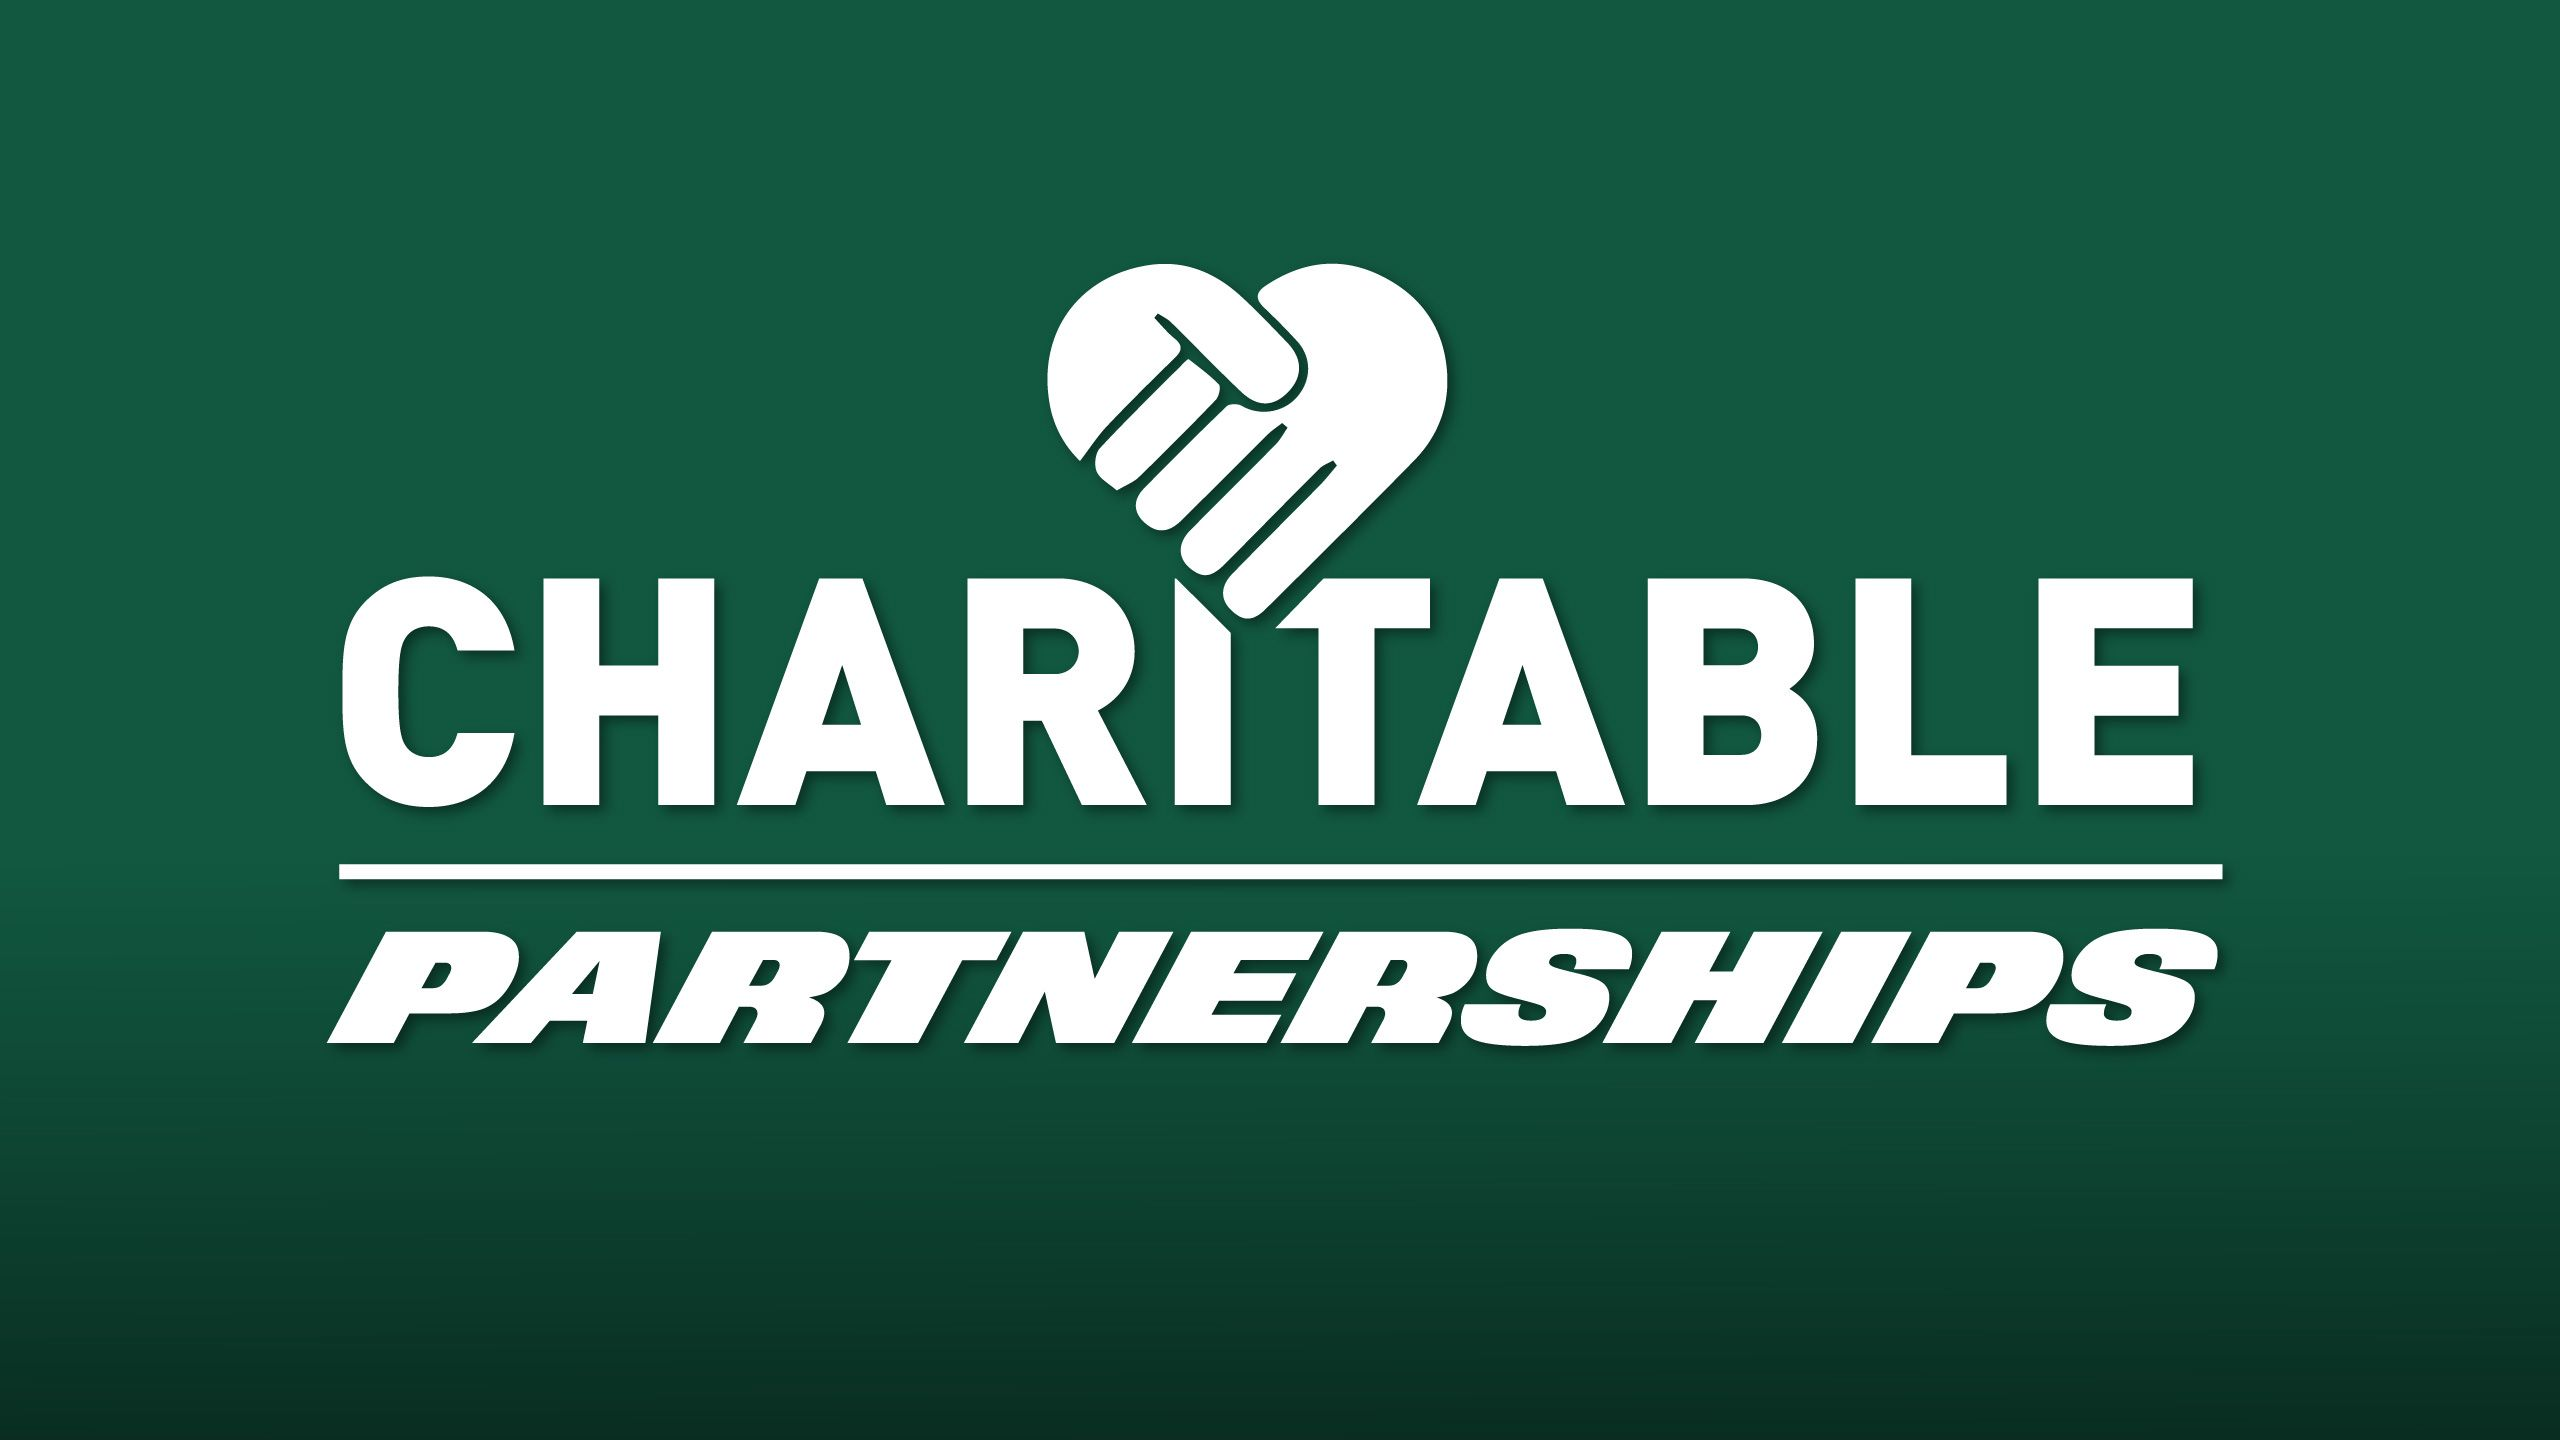 charitable-partnerships-slate